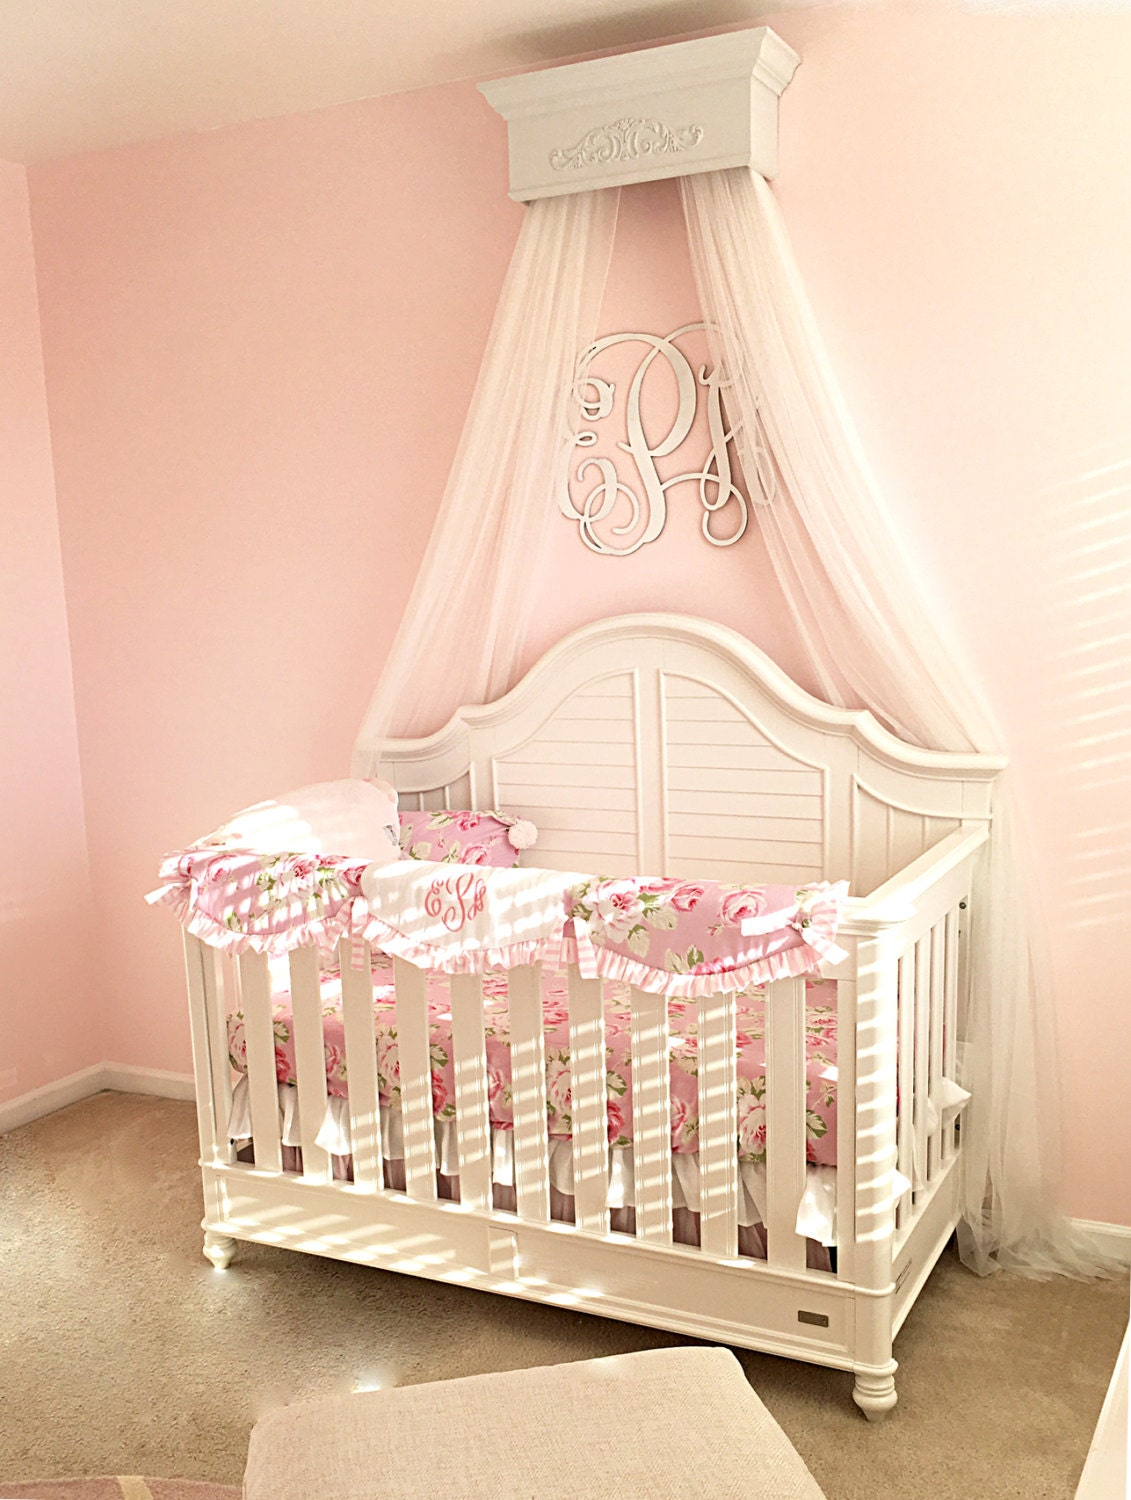 Crib crown canopy bed crown nursery wall design shabby chic for Nursery crown canopy